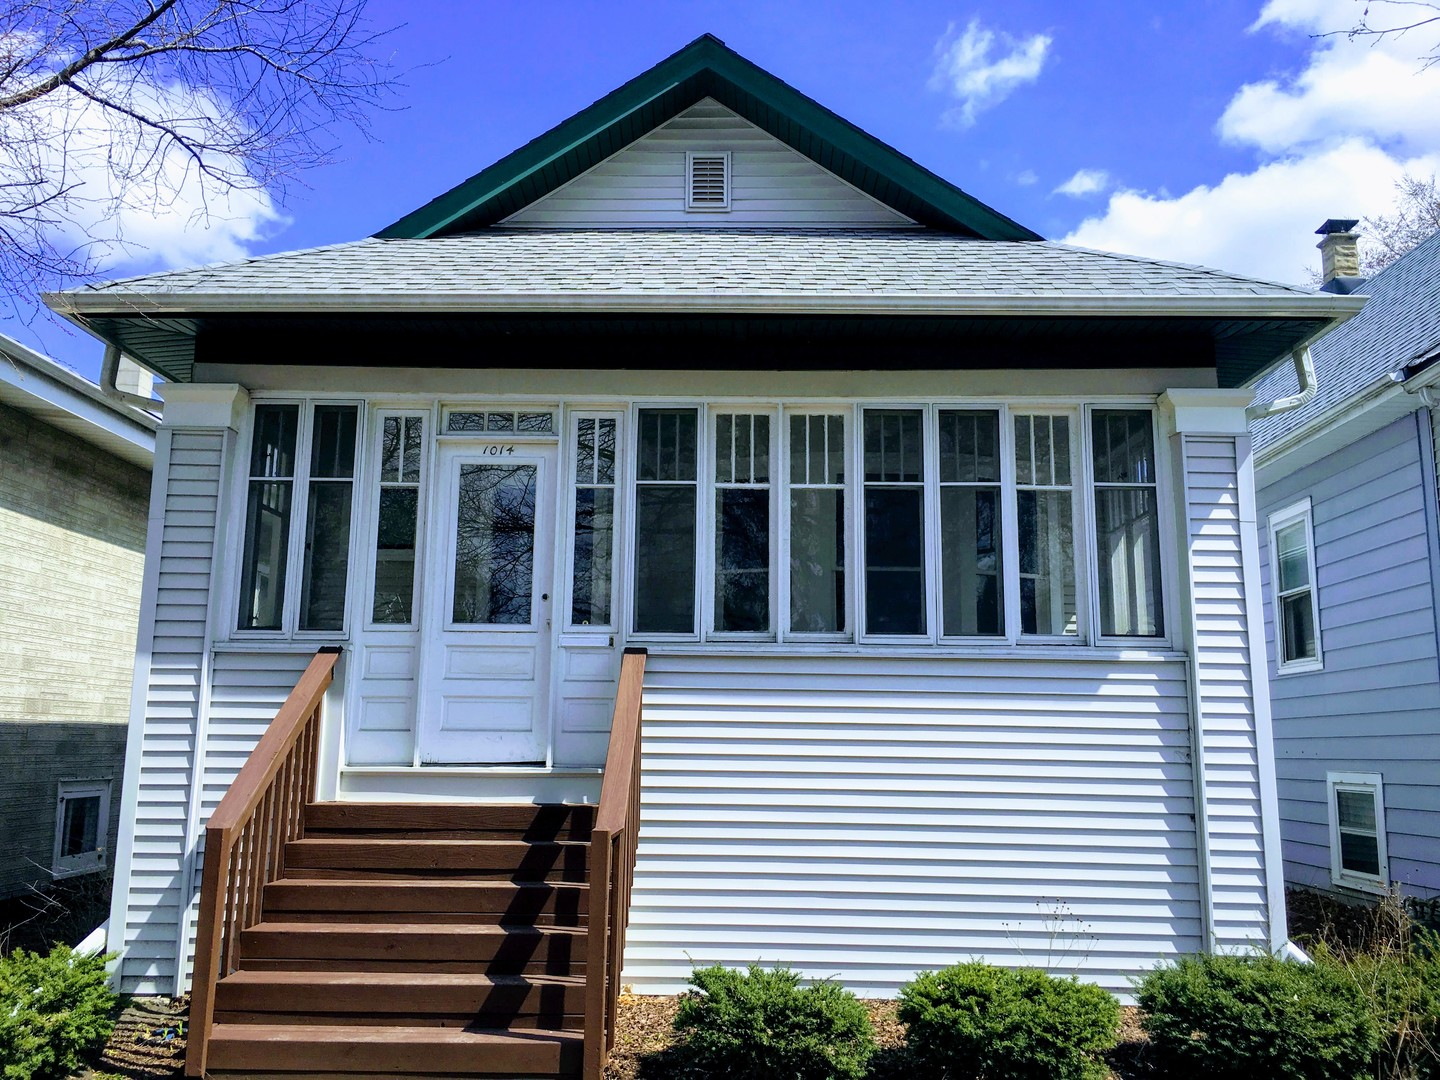 1014 South Ridgeland Avenue, Oak Park in Cook County, IL 60304 Home for Sale